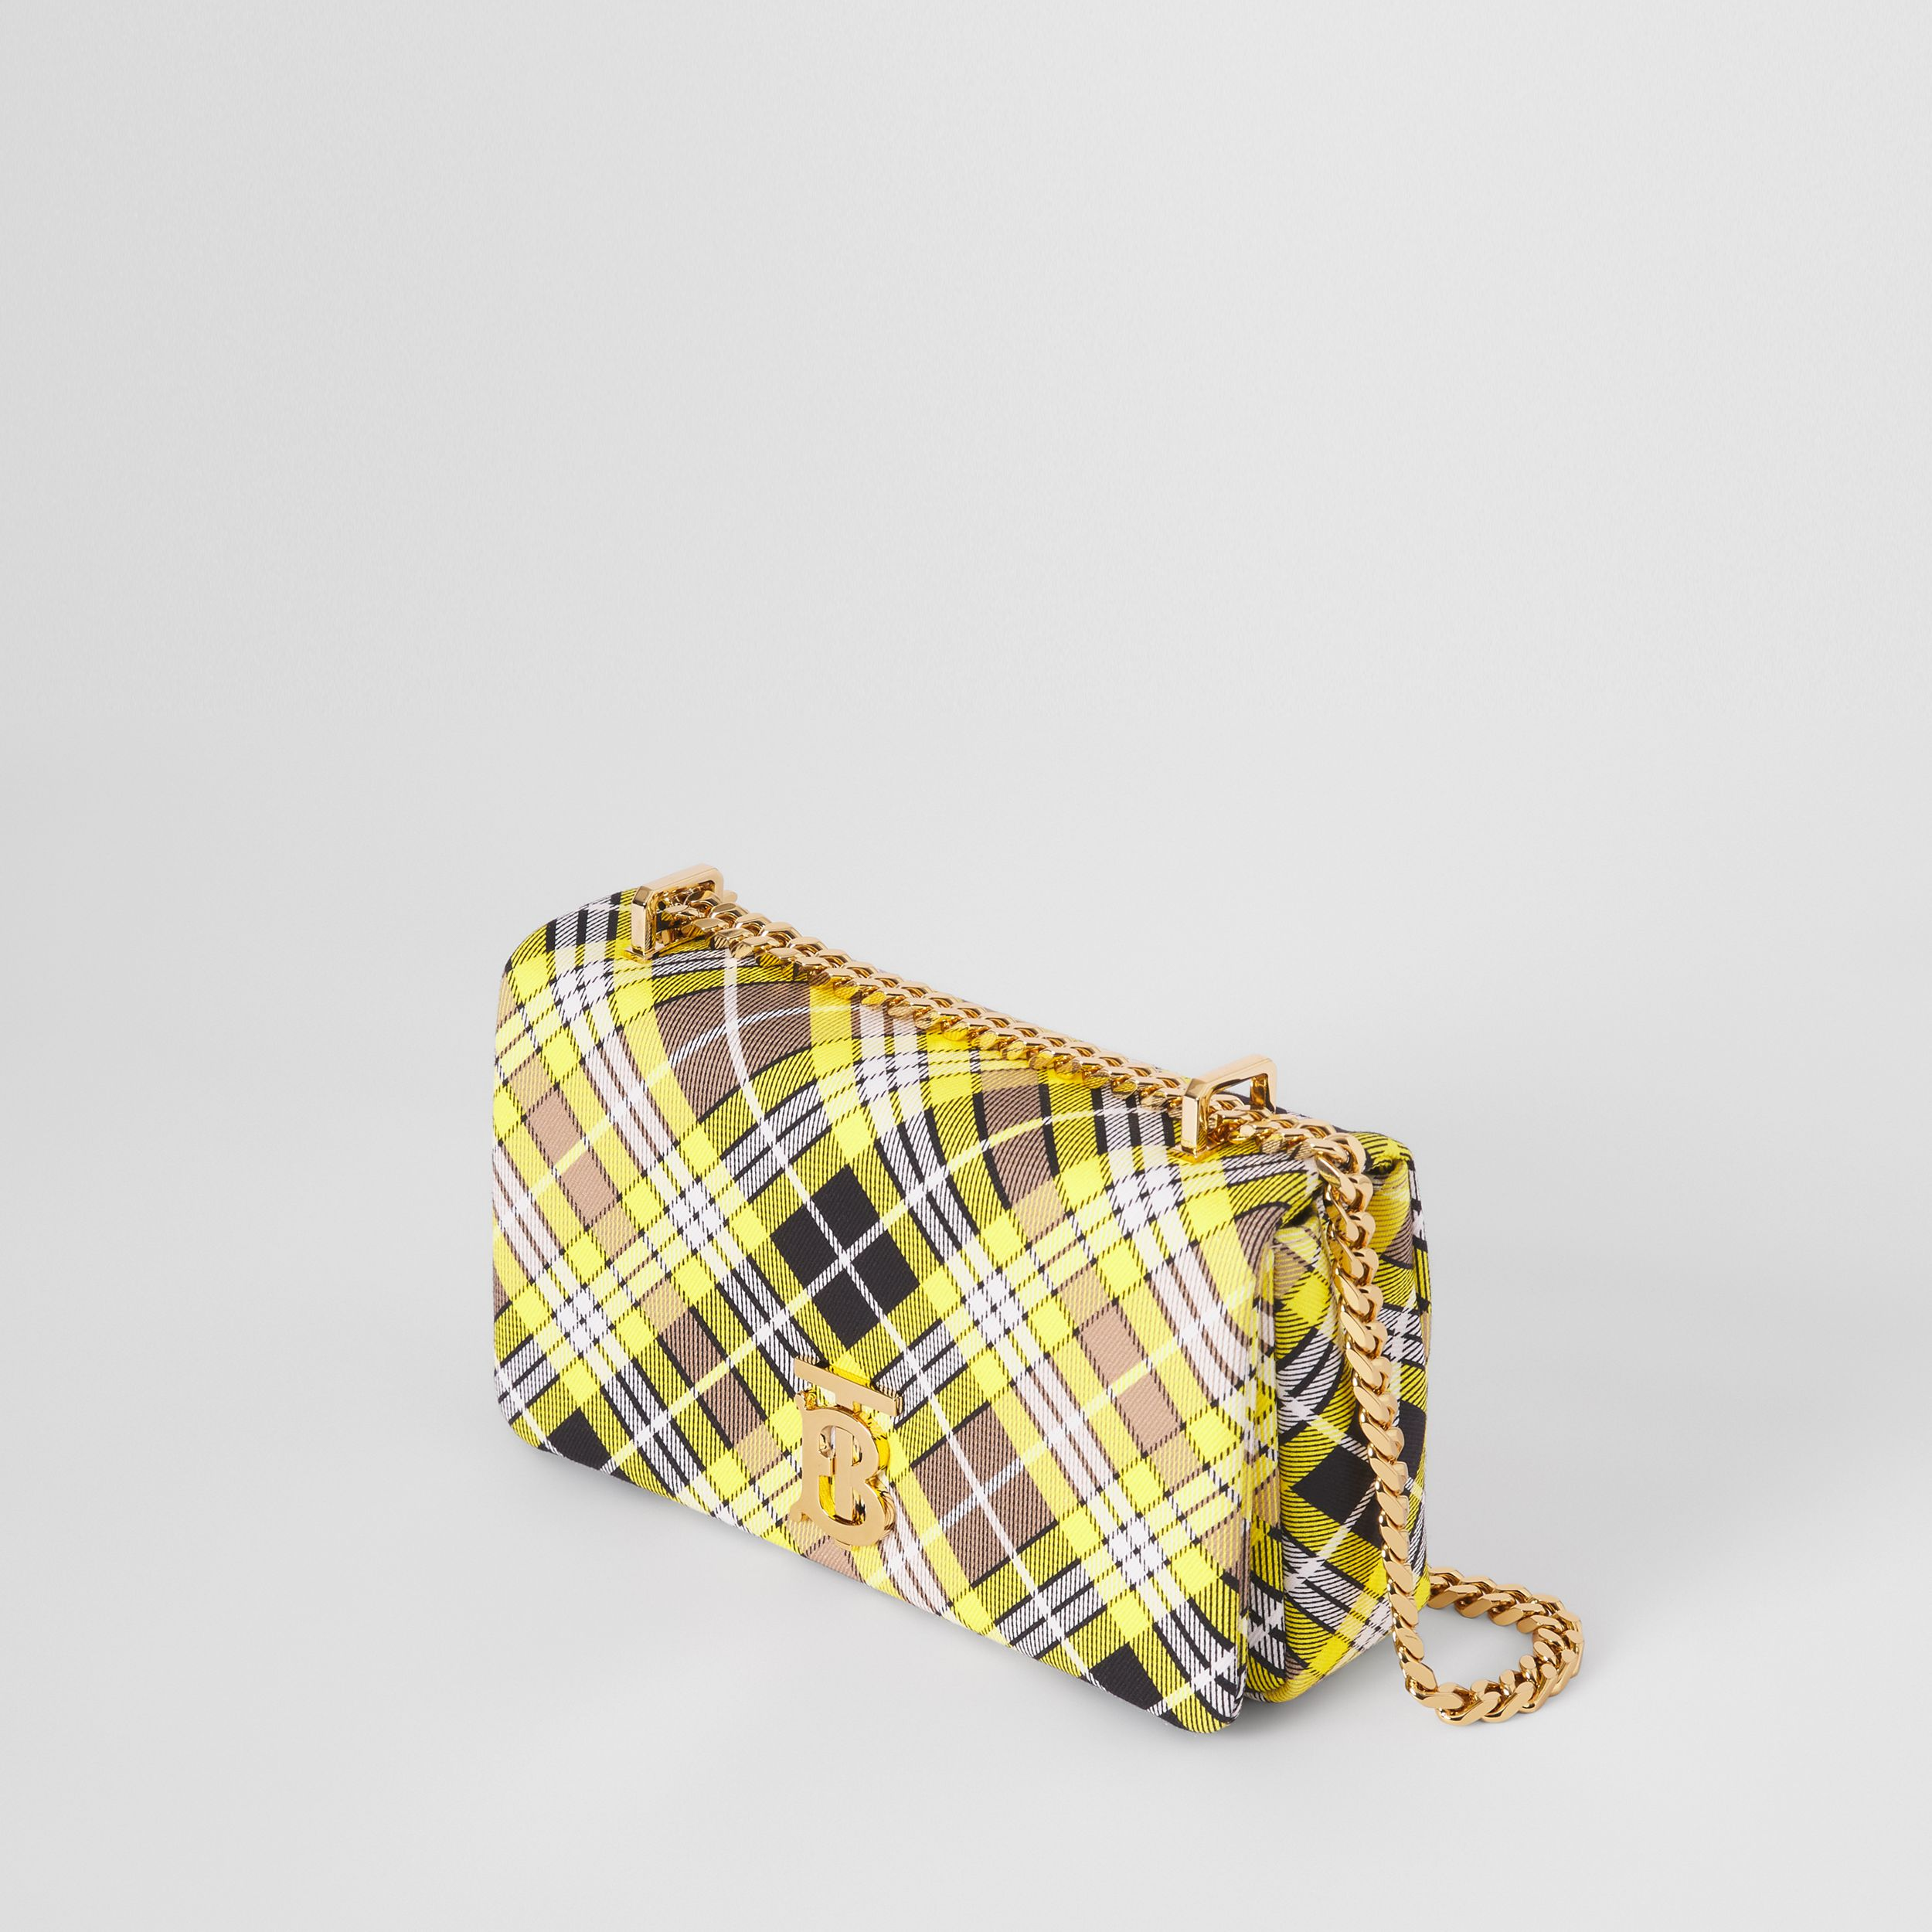 Small Tartan Cotton Lola Bag in Marigold Yellow - Women | Burberry - 3